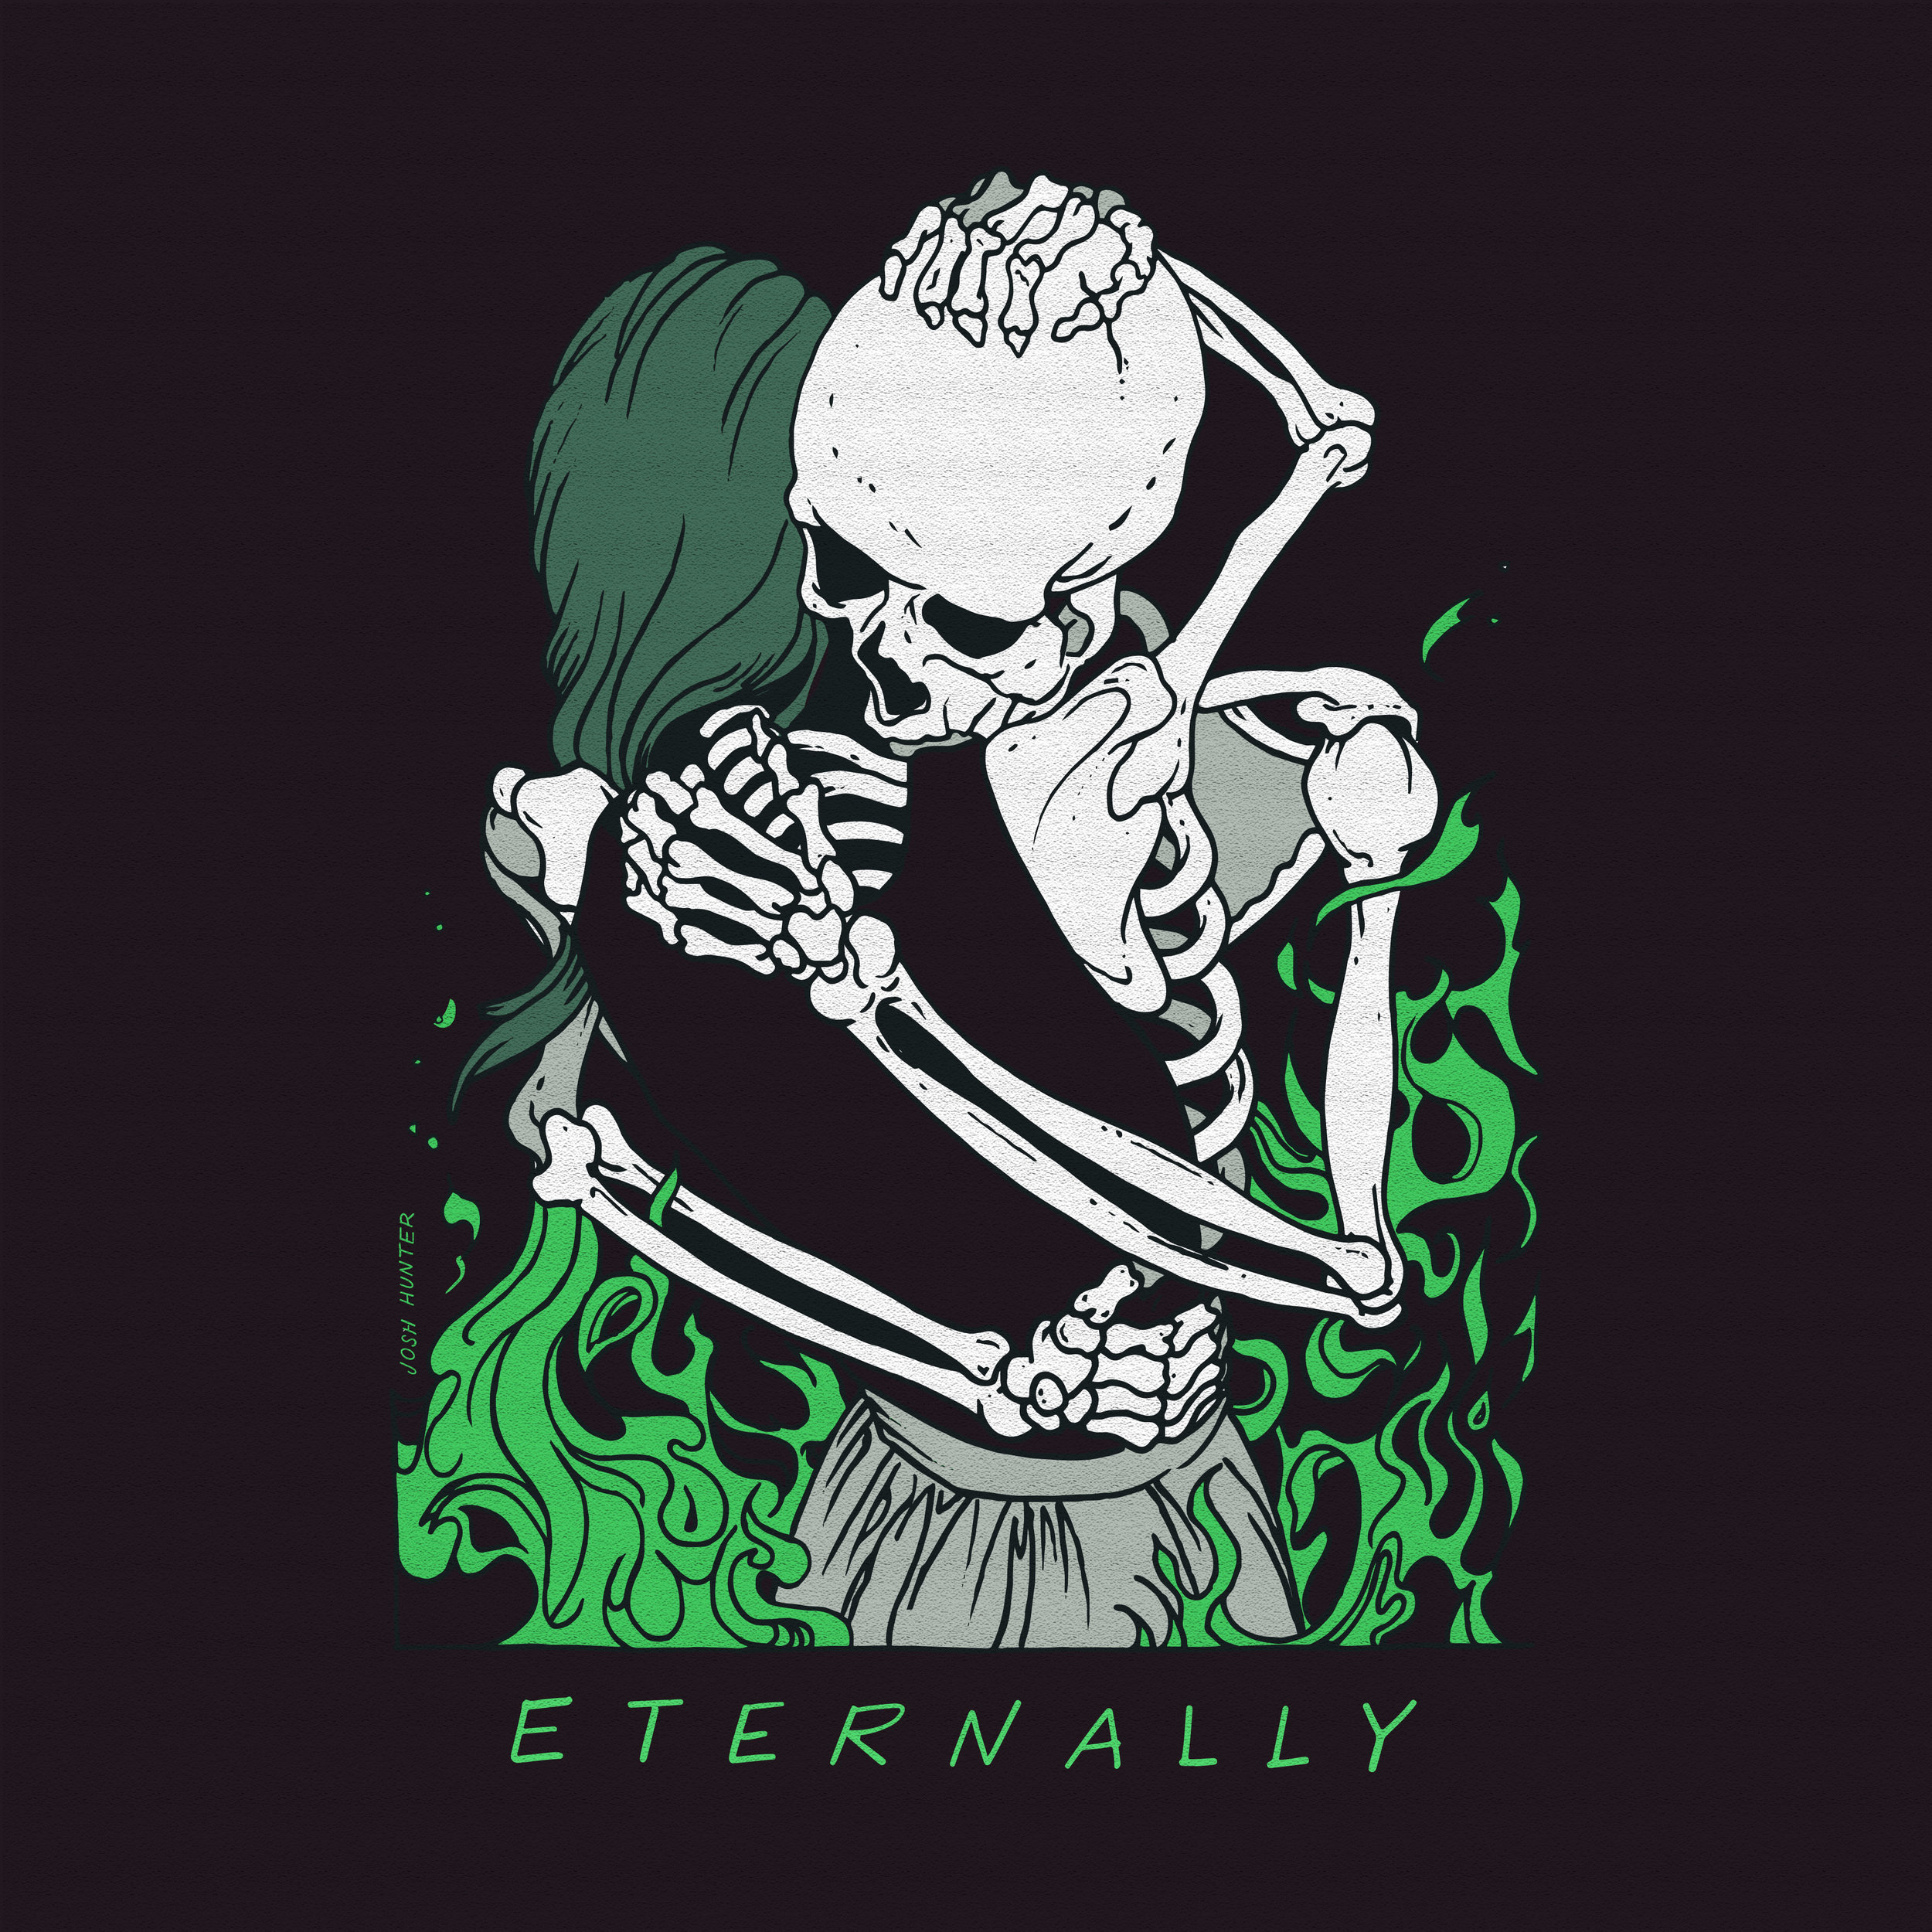 ETERNALLY-skull-lovers-josh-hunter